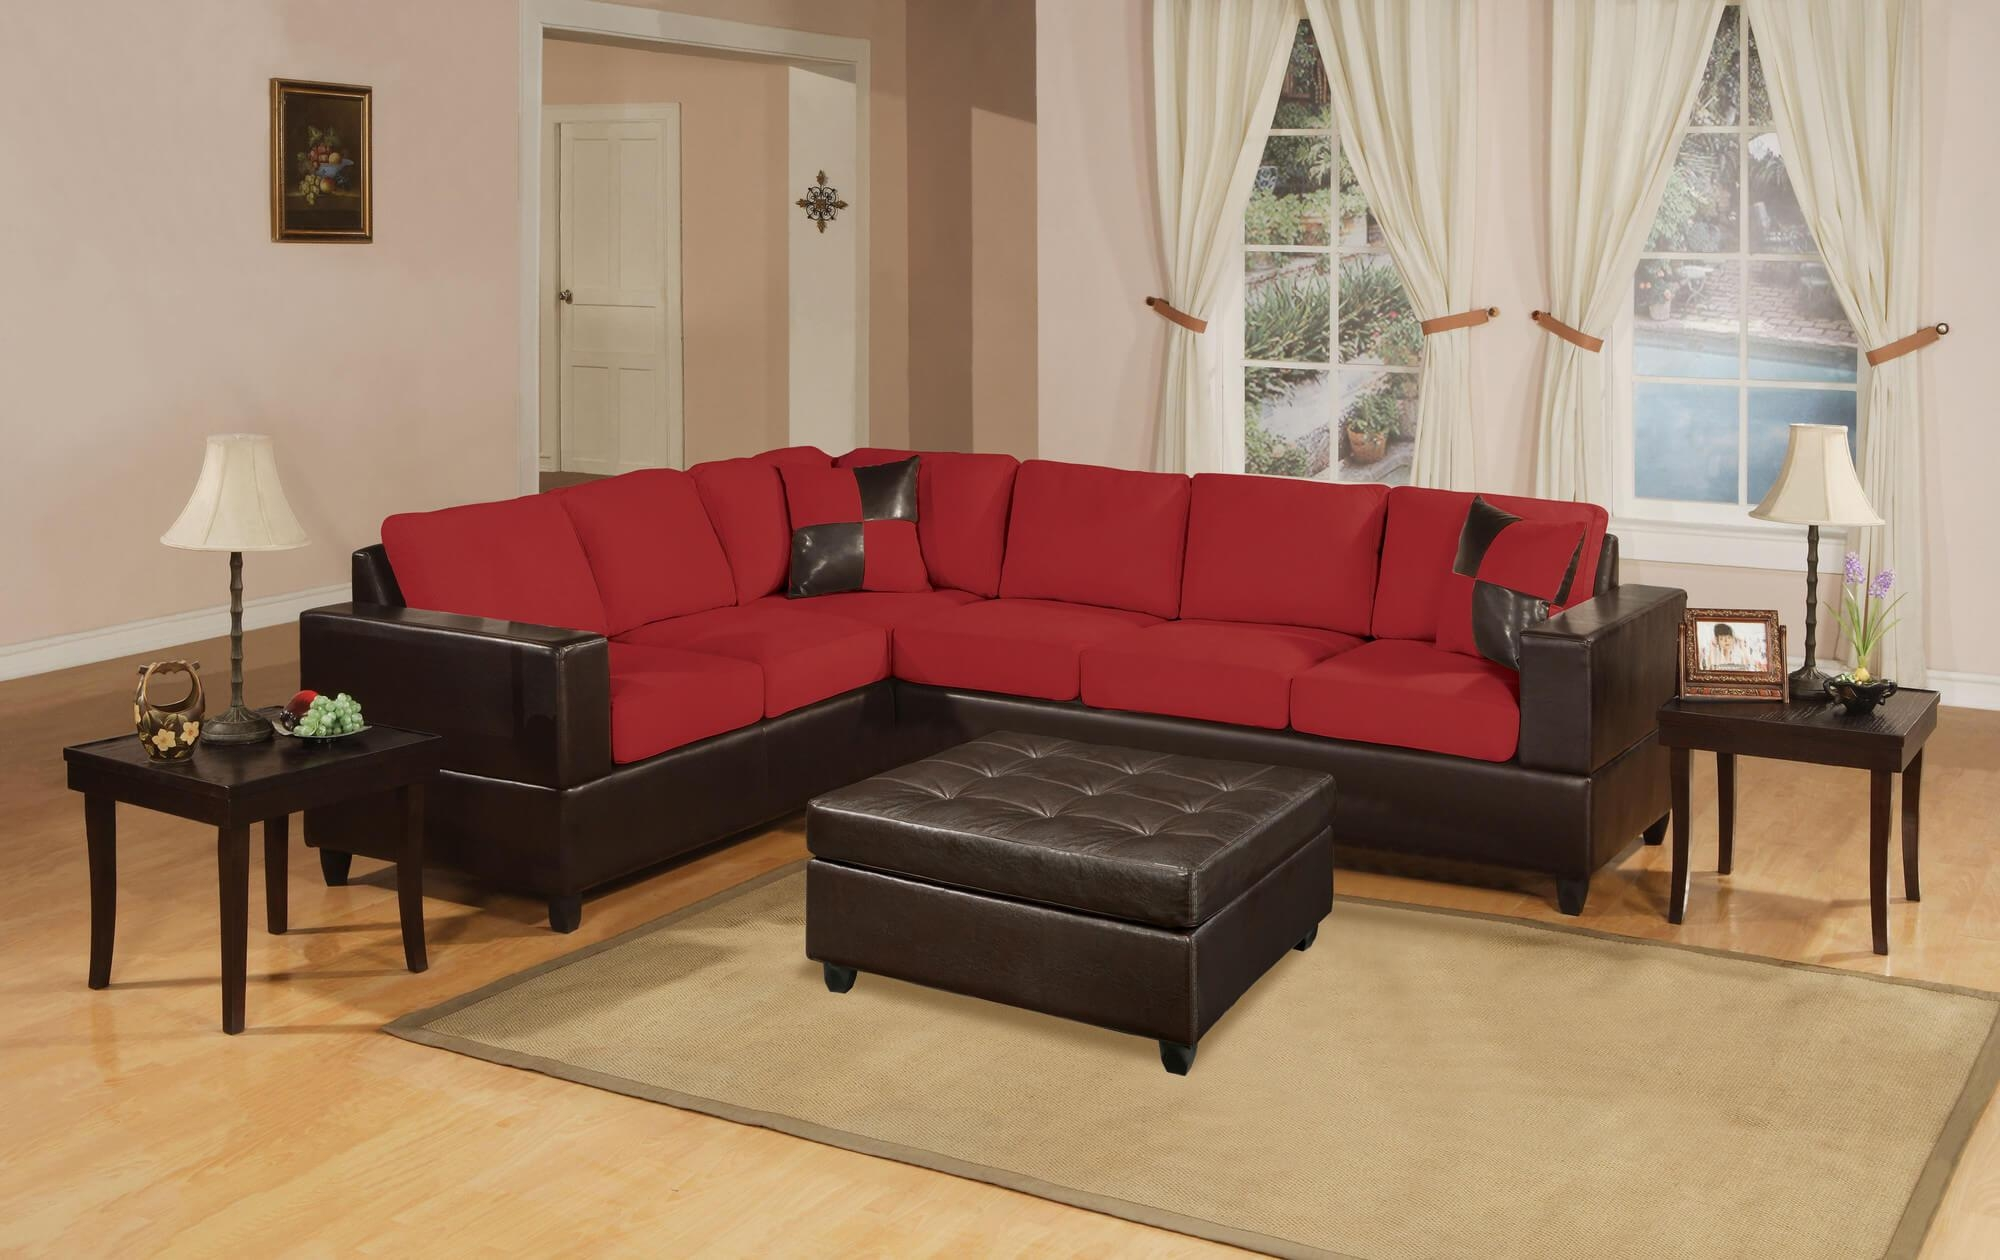 Sofas : Amazing Brown Sectional Couch Leather Chaise Sofa Throughout Red Microfiber Sectional Sofas (Image 18 of 21)